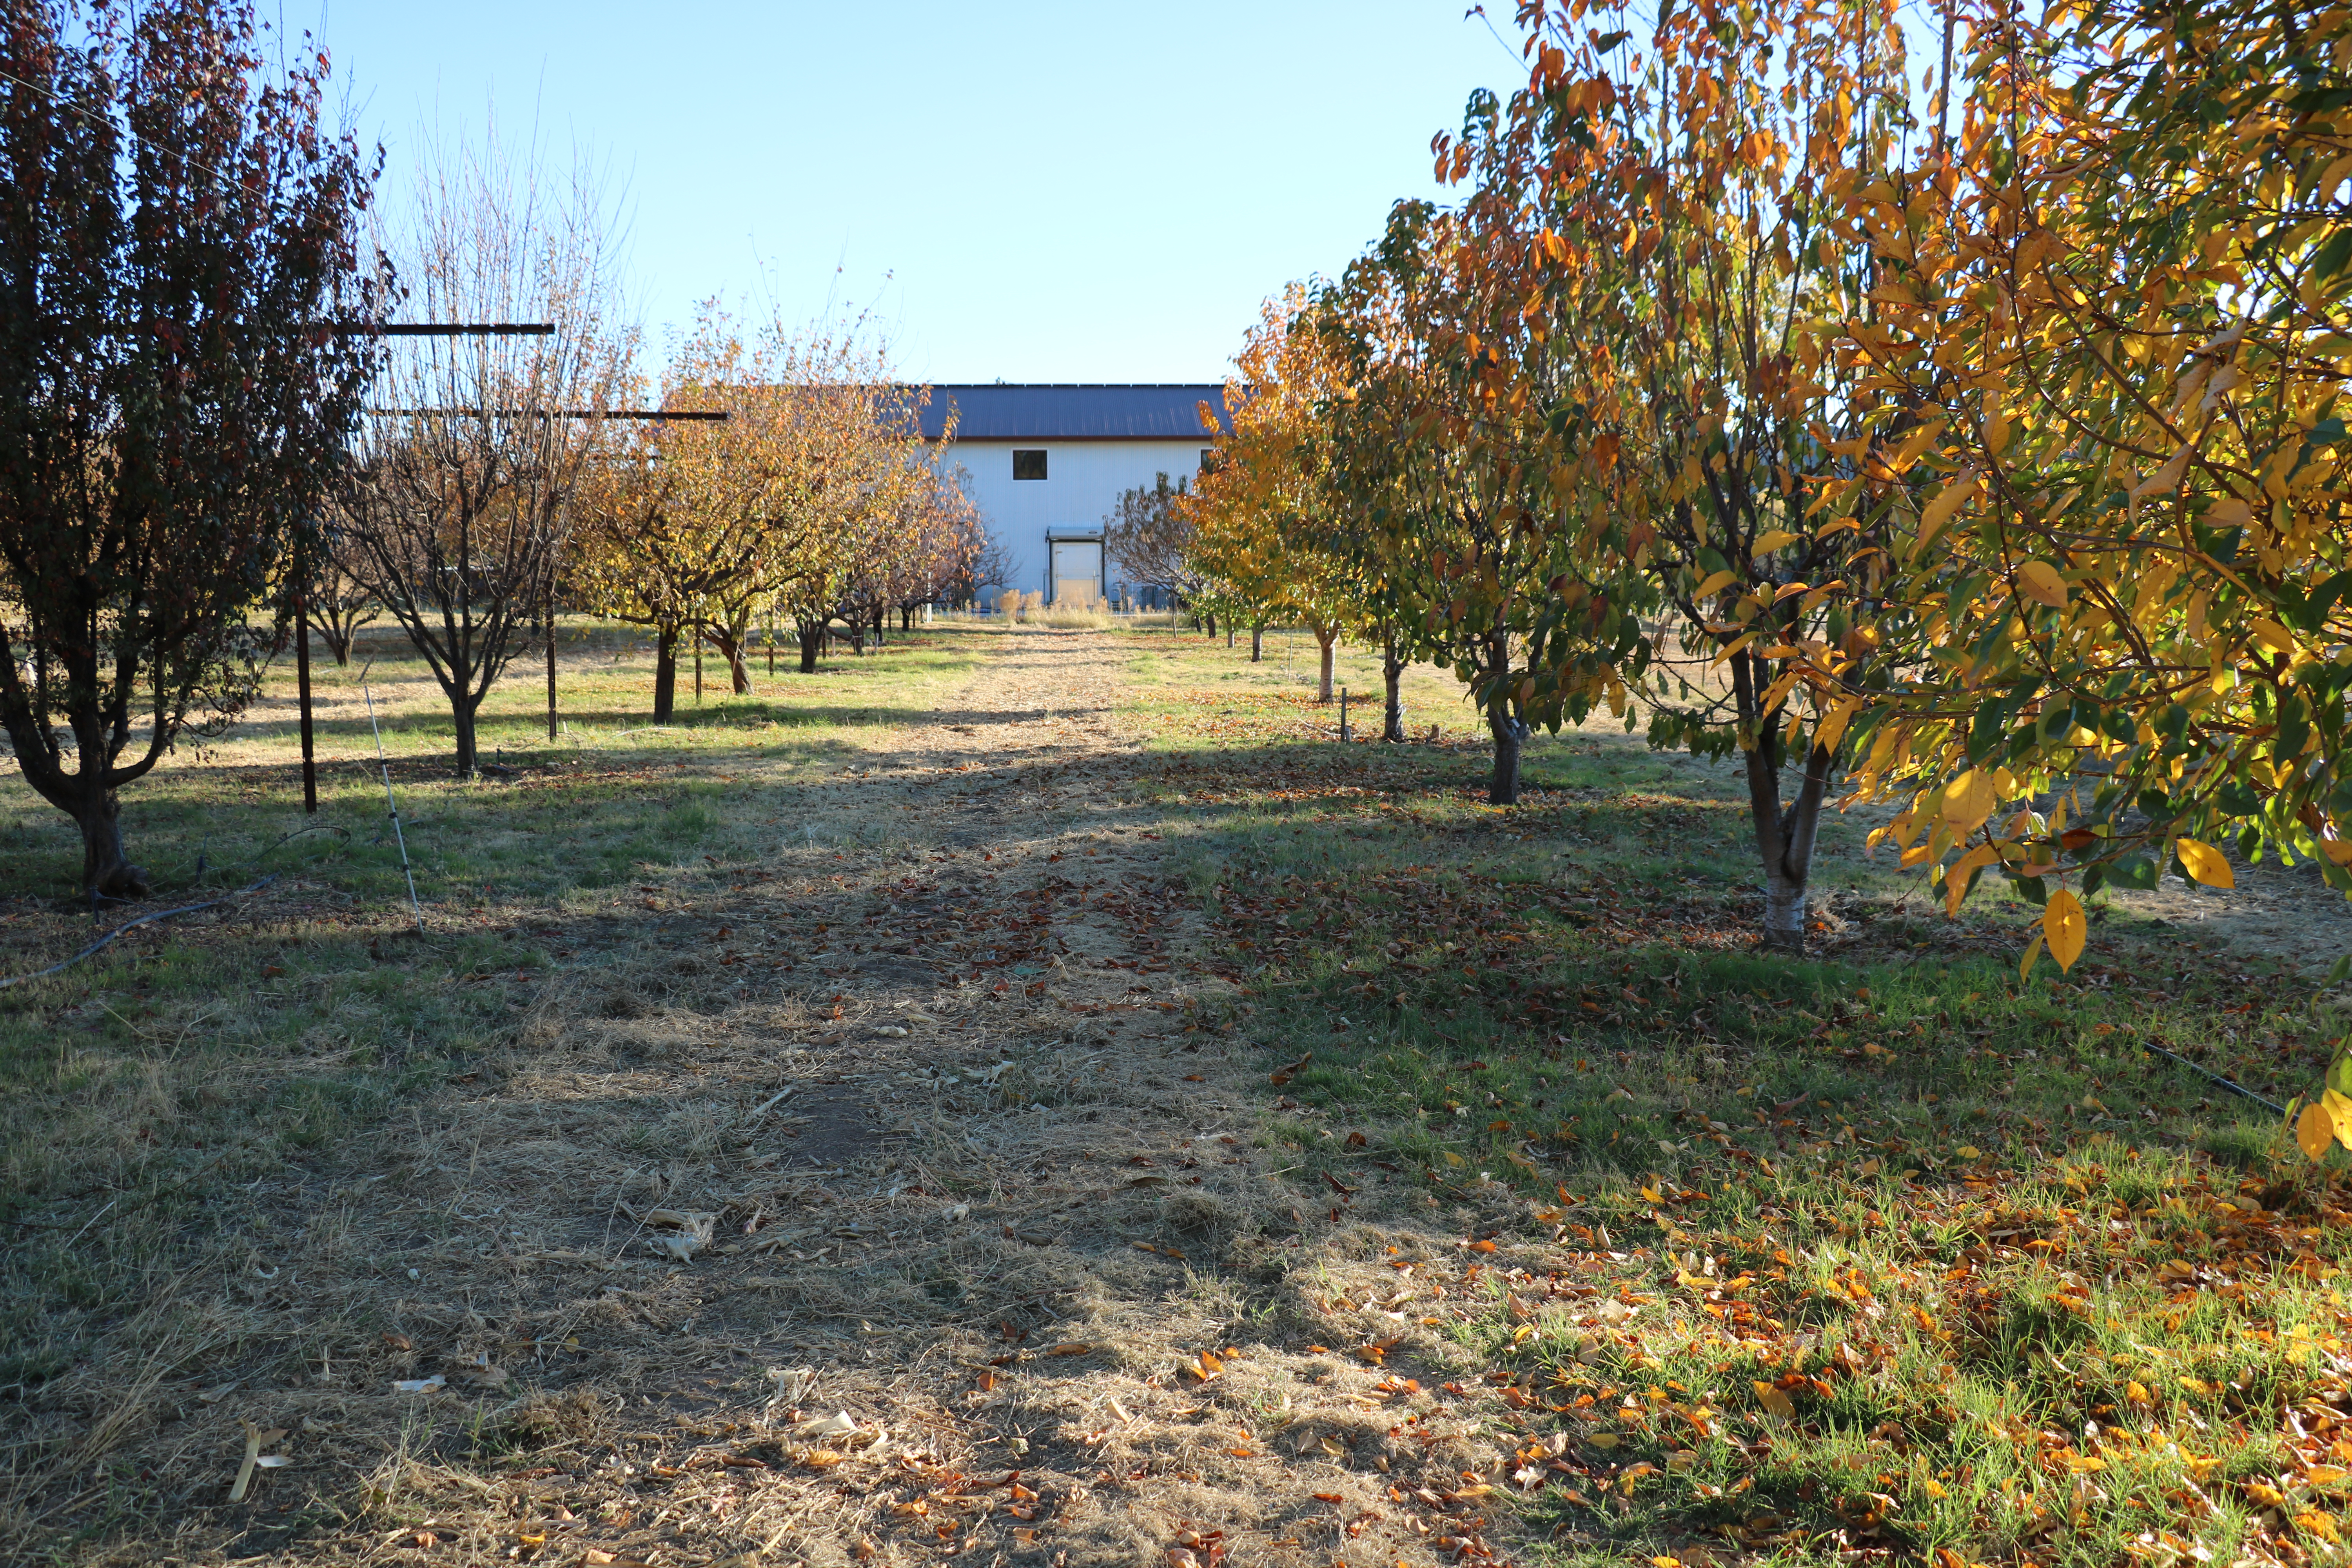 Plum and Pluot trees in the fall